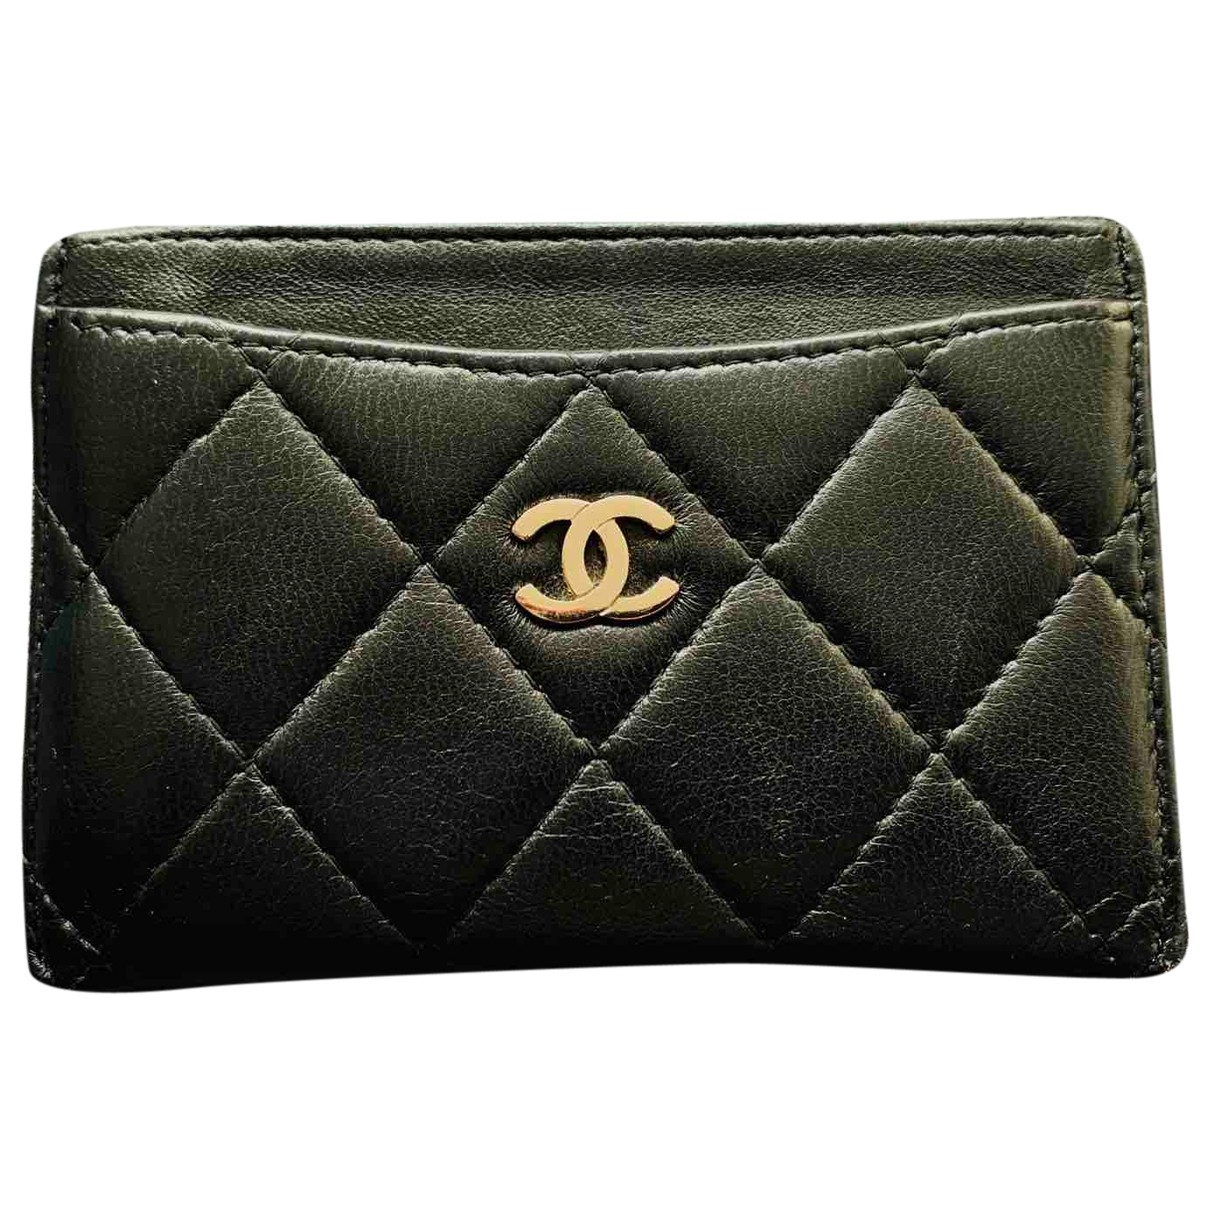 Chanel Timeless/Classique Kleinlederwaren in  Schwarz Leder